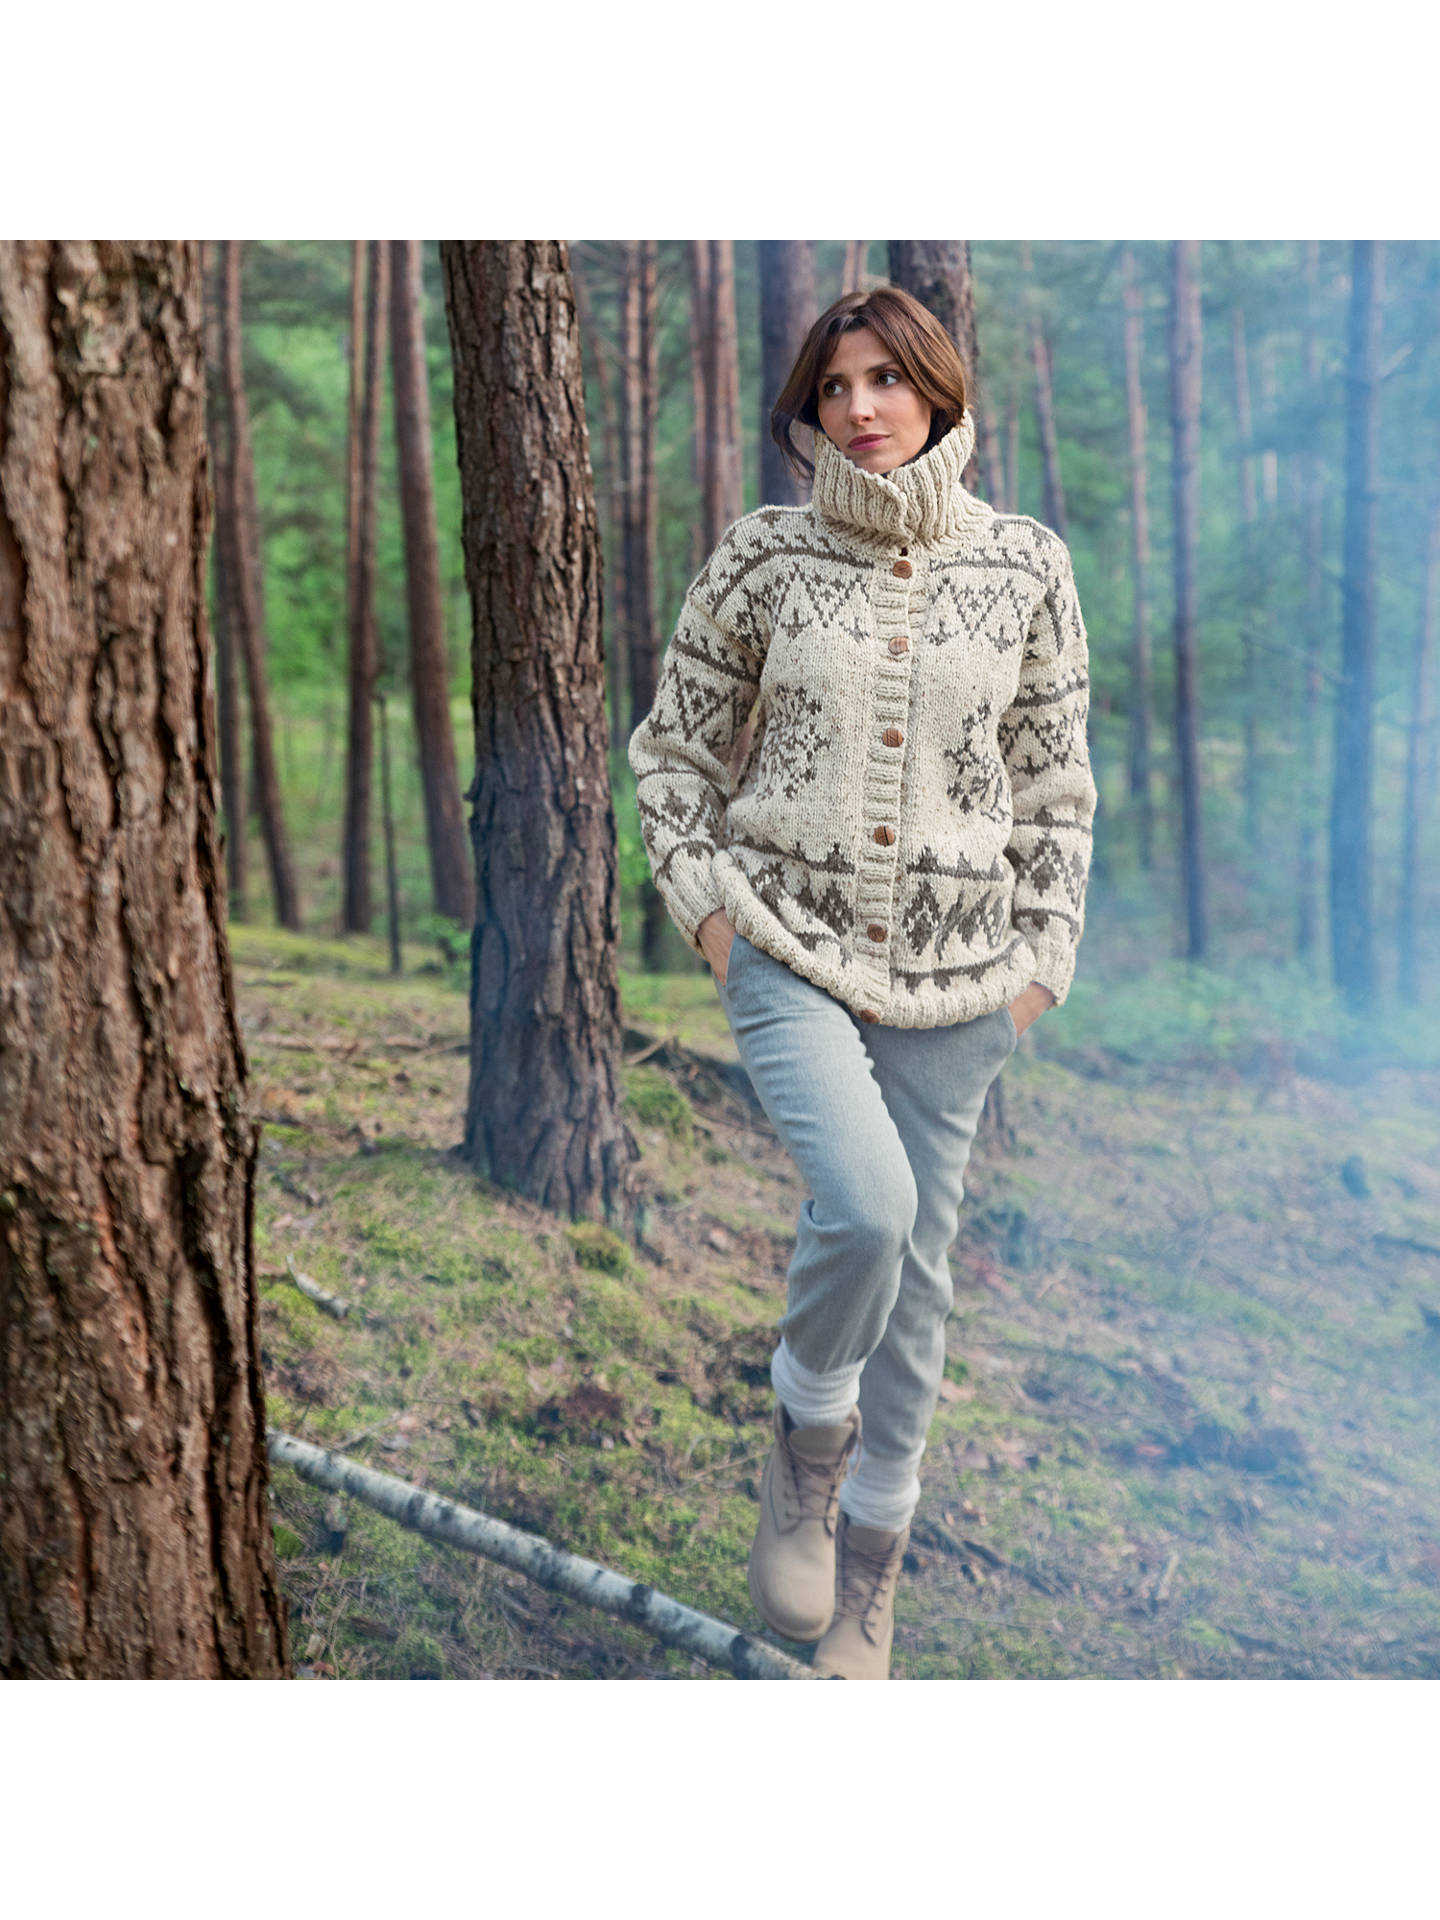 Buy Bergere De France Le Wooling Magazine 2 Christmas Knitting Patterns Online at johnlewis.com